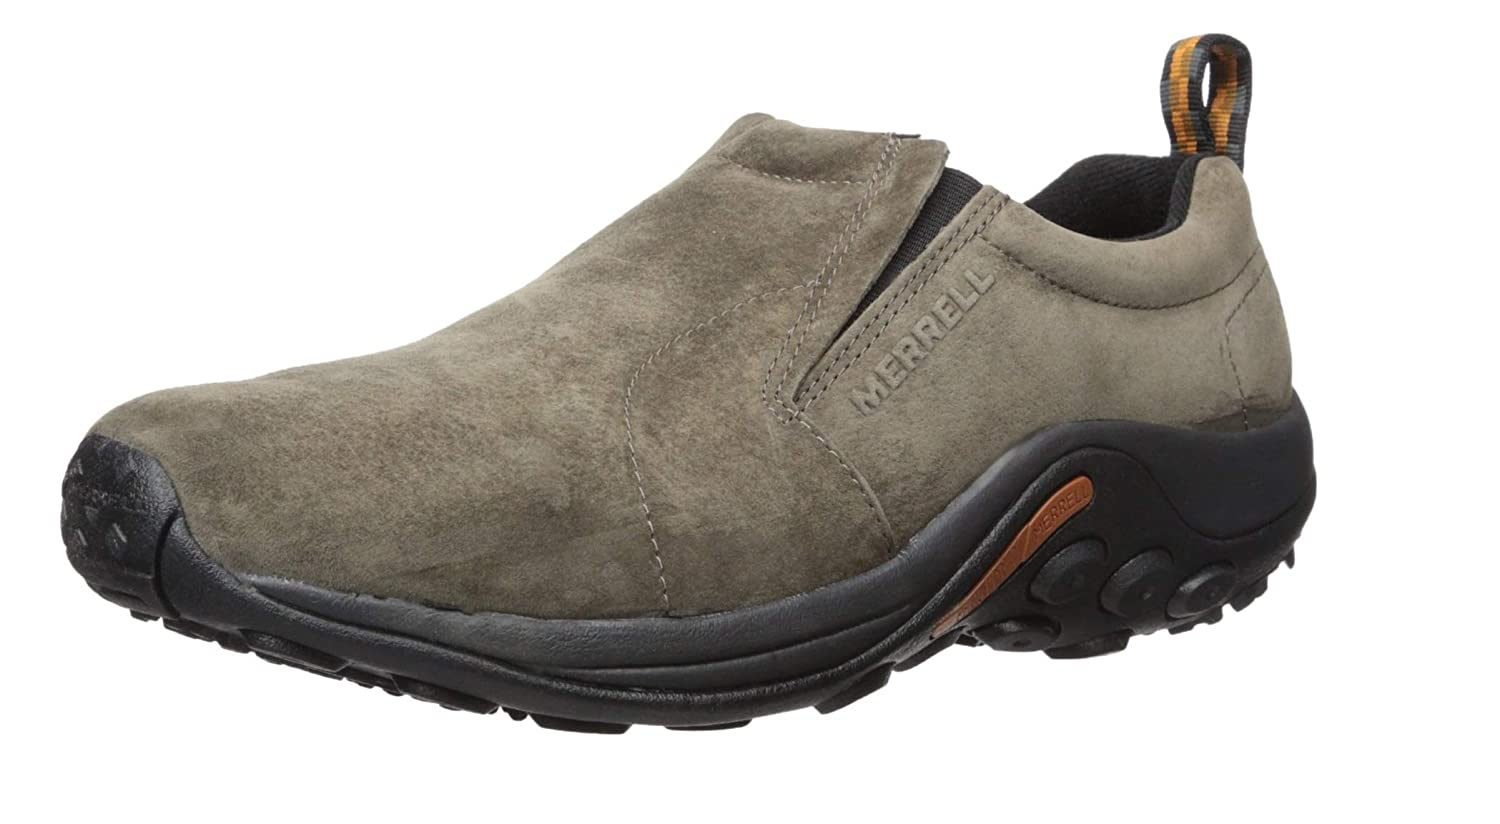 TALLA 41.5 EU. Merrell Jungle Moc, Mocasines para Hombre